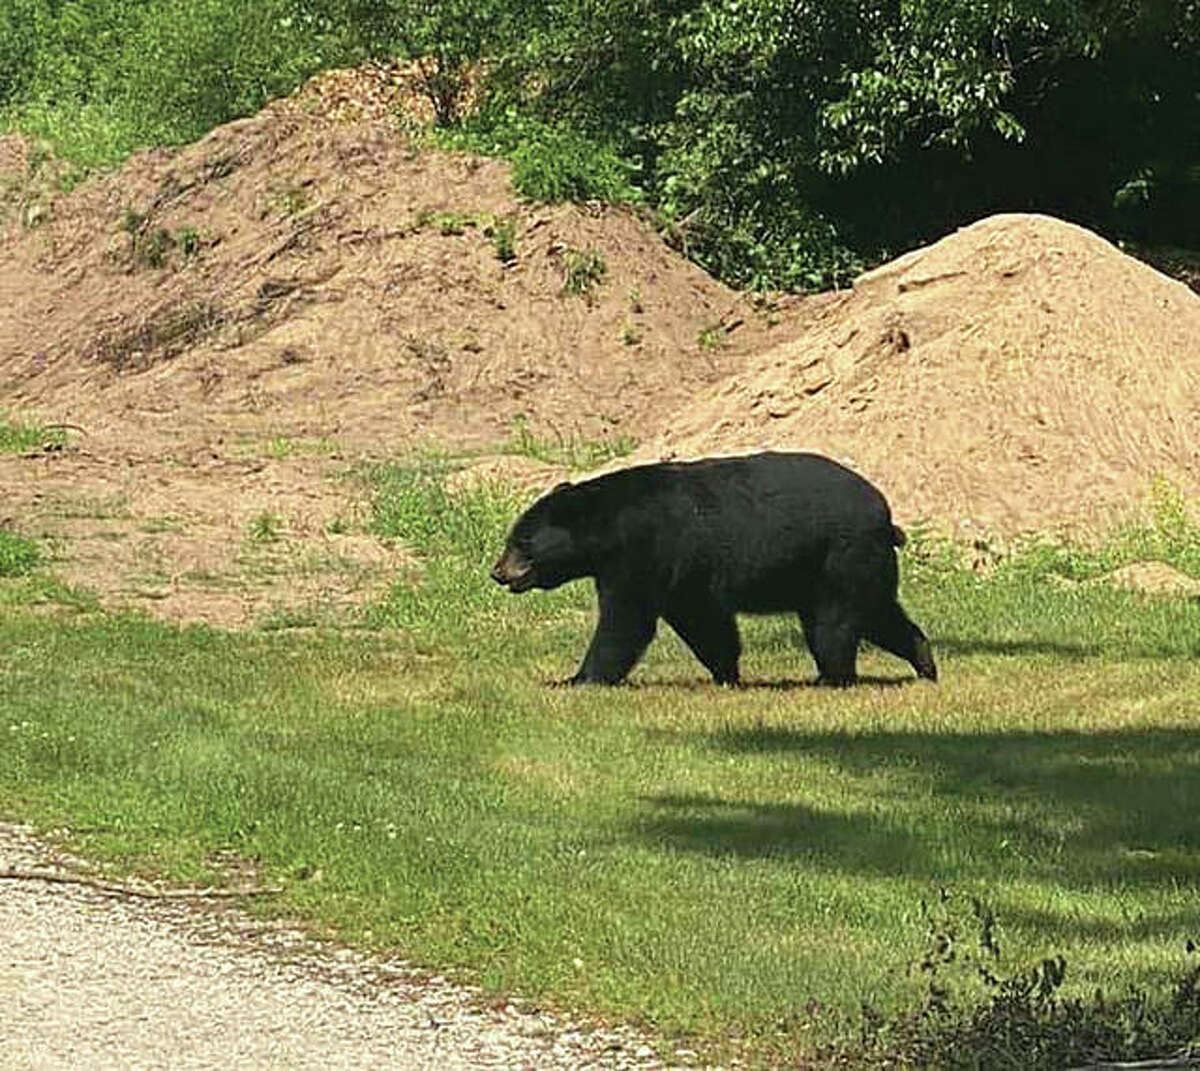 A black bear, similar to this one seen last year, was reported in LaVista Park in Godfrey.